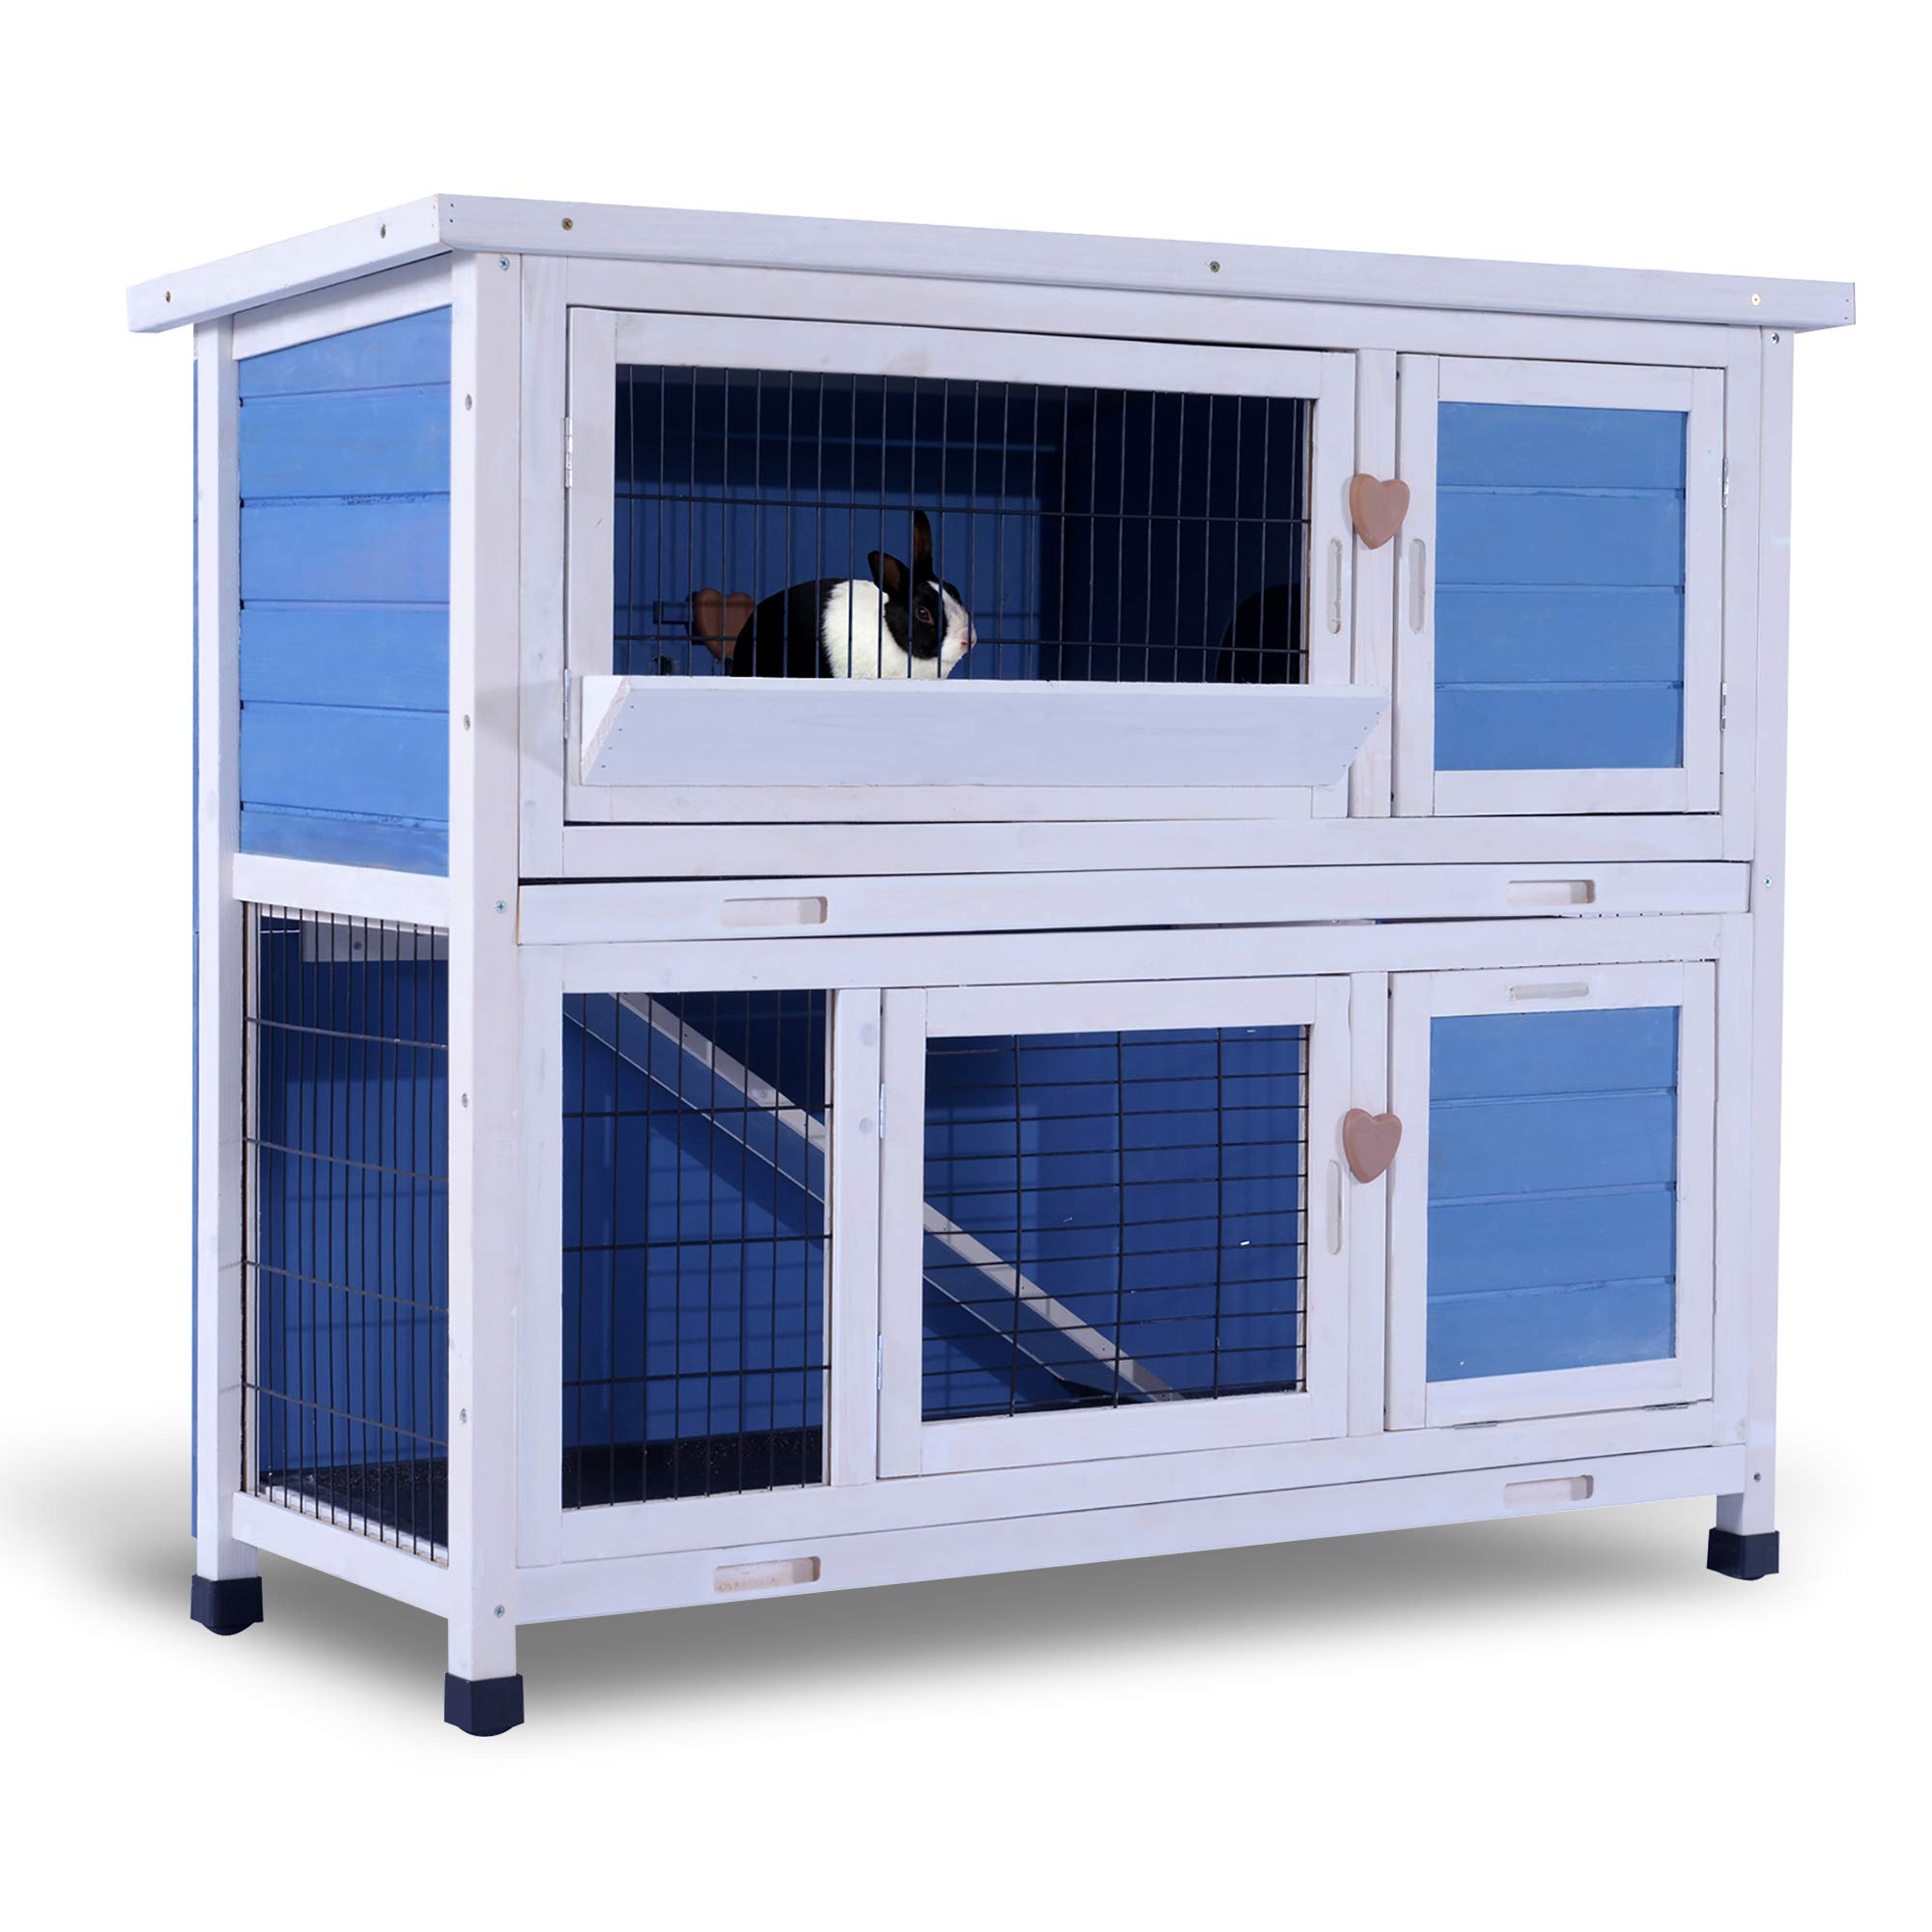 Lovupet 40'' Wooden Rabbit Hutch Small Animal House Pet Cage Chicken Coop 0323L (Blue)